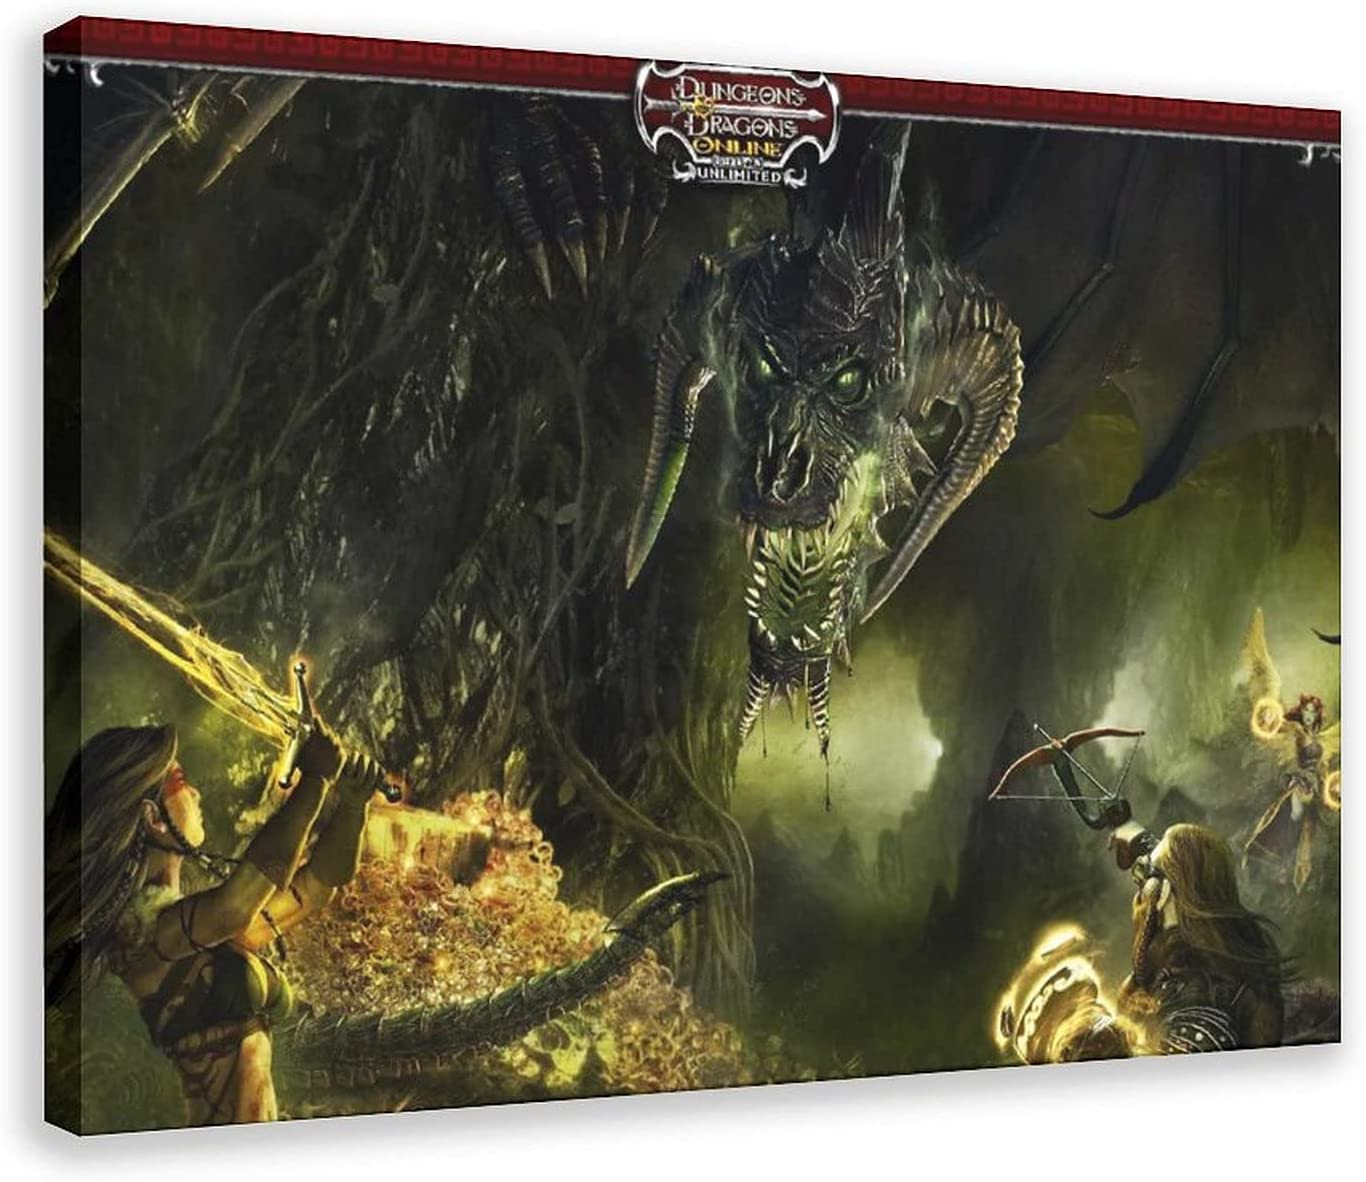 Art excellence Images Dungeons And Dragons Decor Spor Seattle Mall Poster Canvas Bedroom